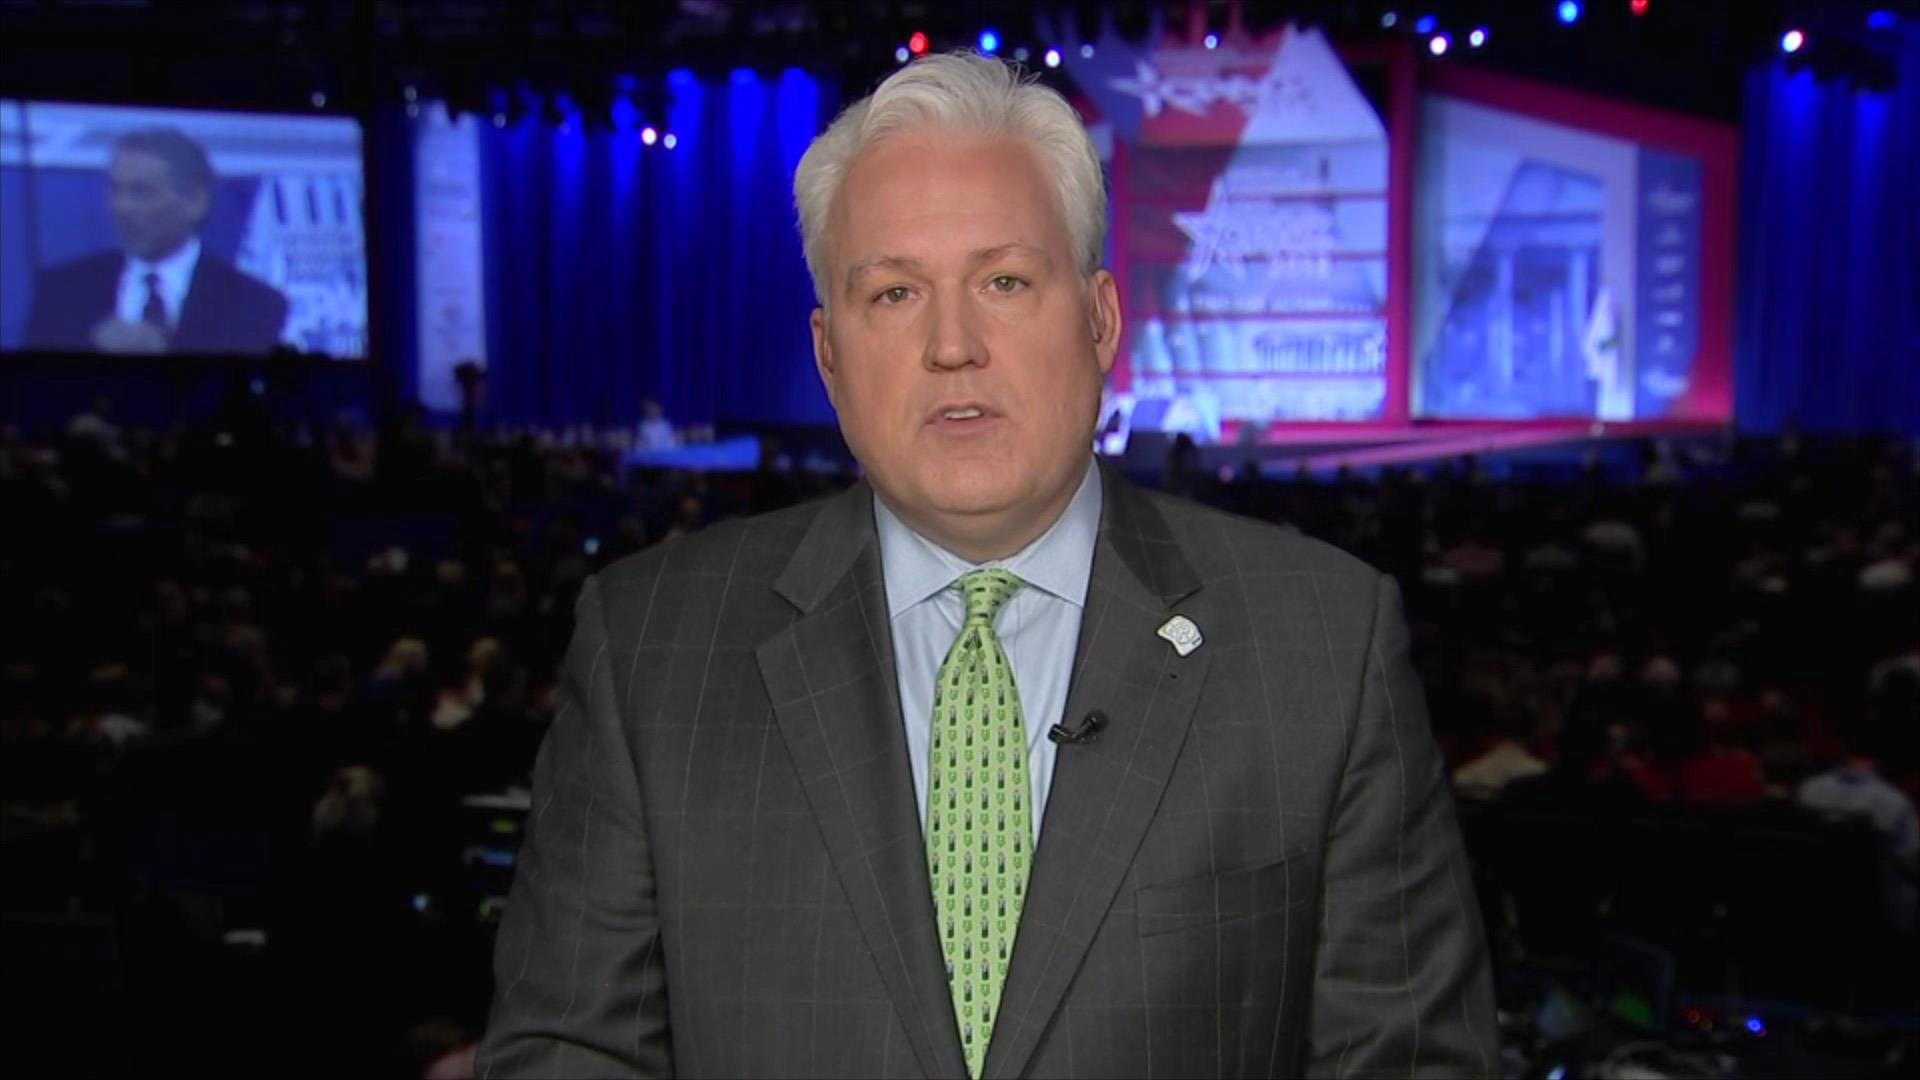 Matt Schlapp addresses gun reform, NRA ahead of CPAC